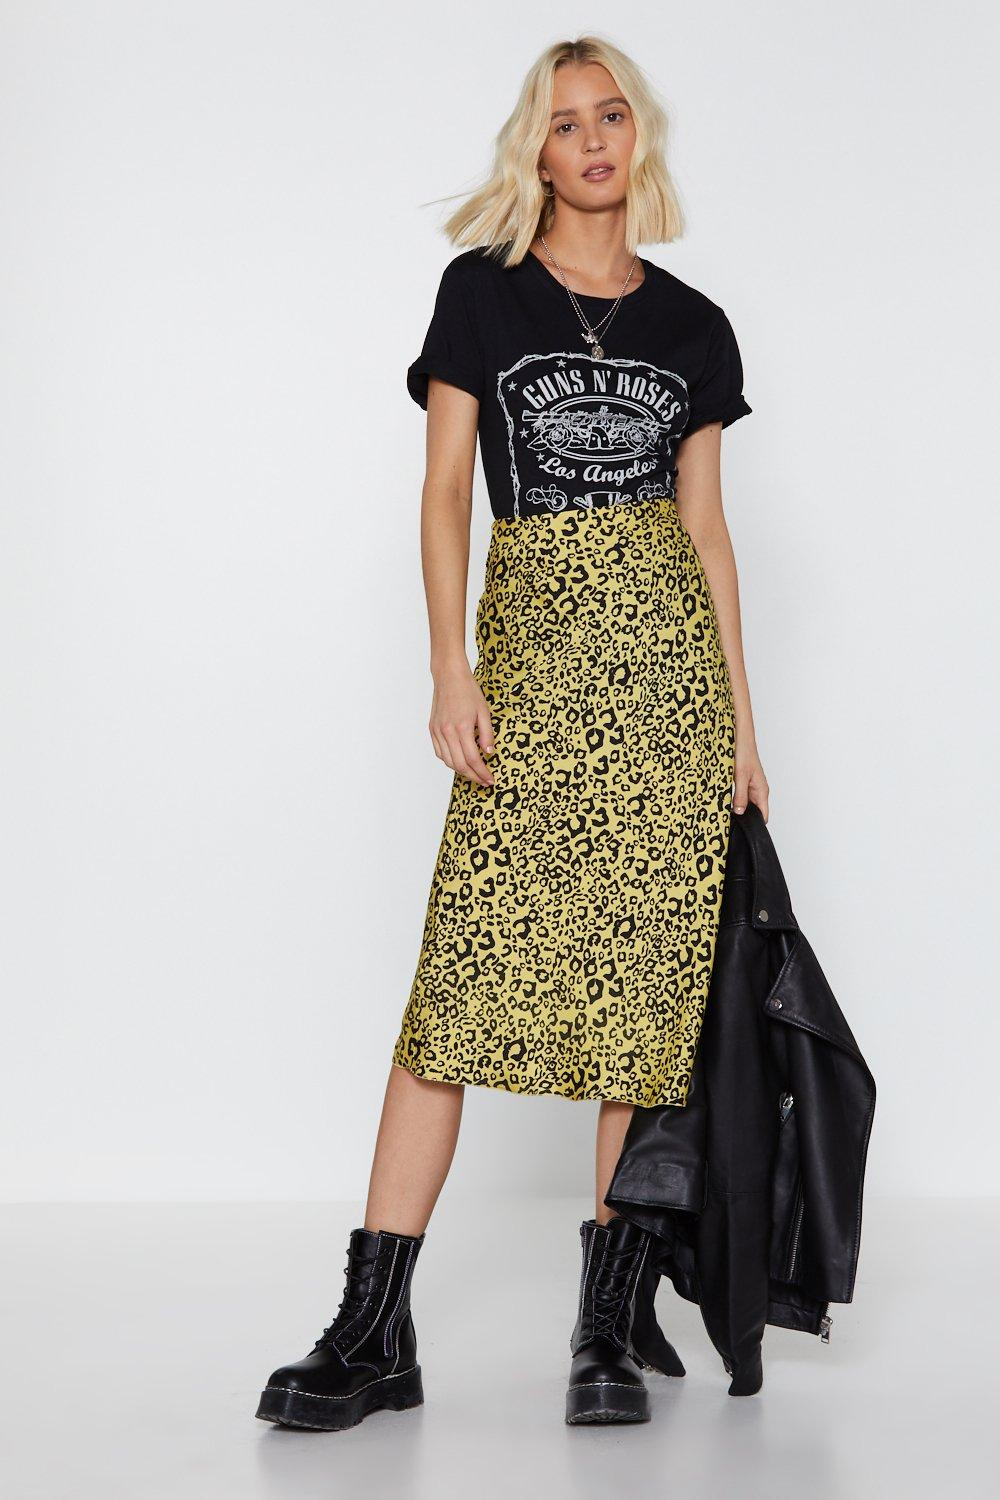 You've Cat Another Thing Coming Leopard Midi Skirt | Shop Clothes at Nasty Gal!